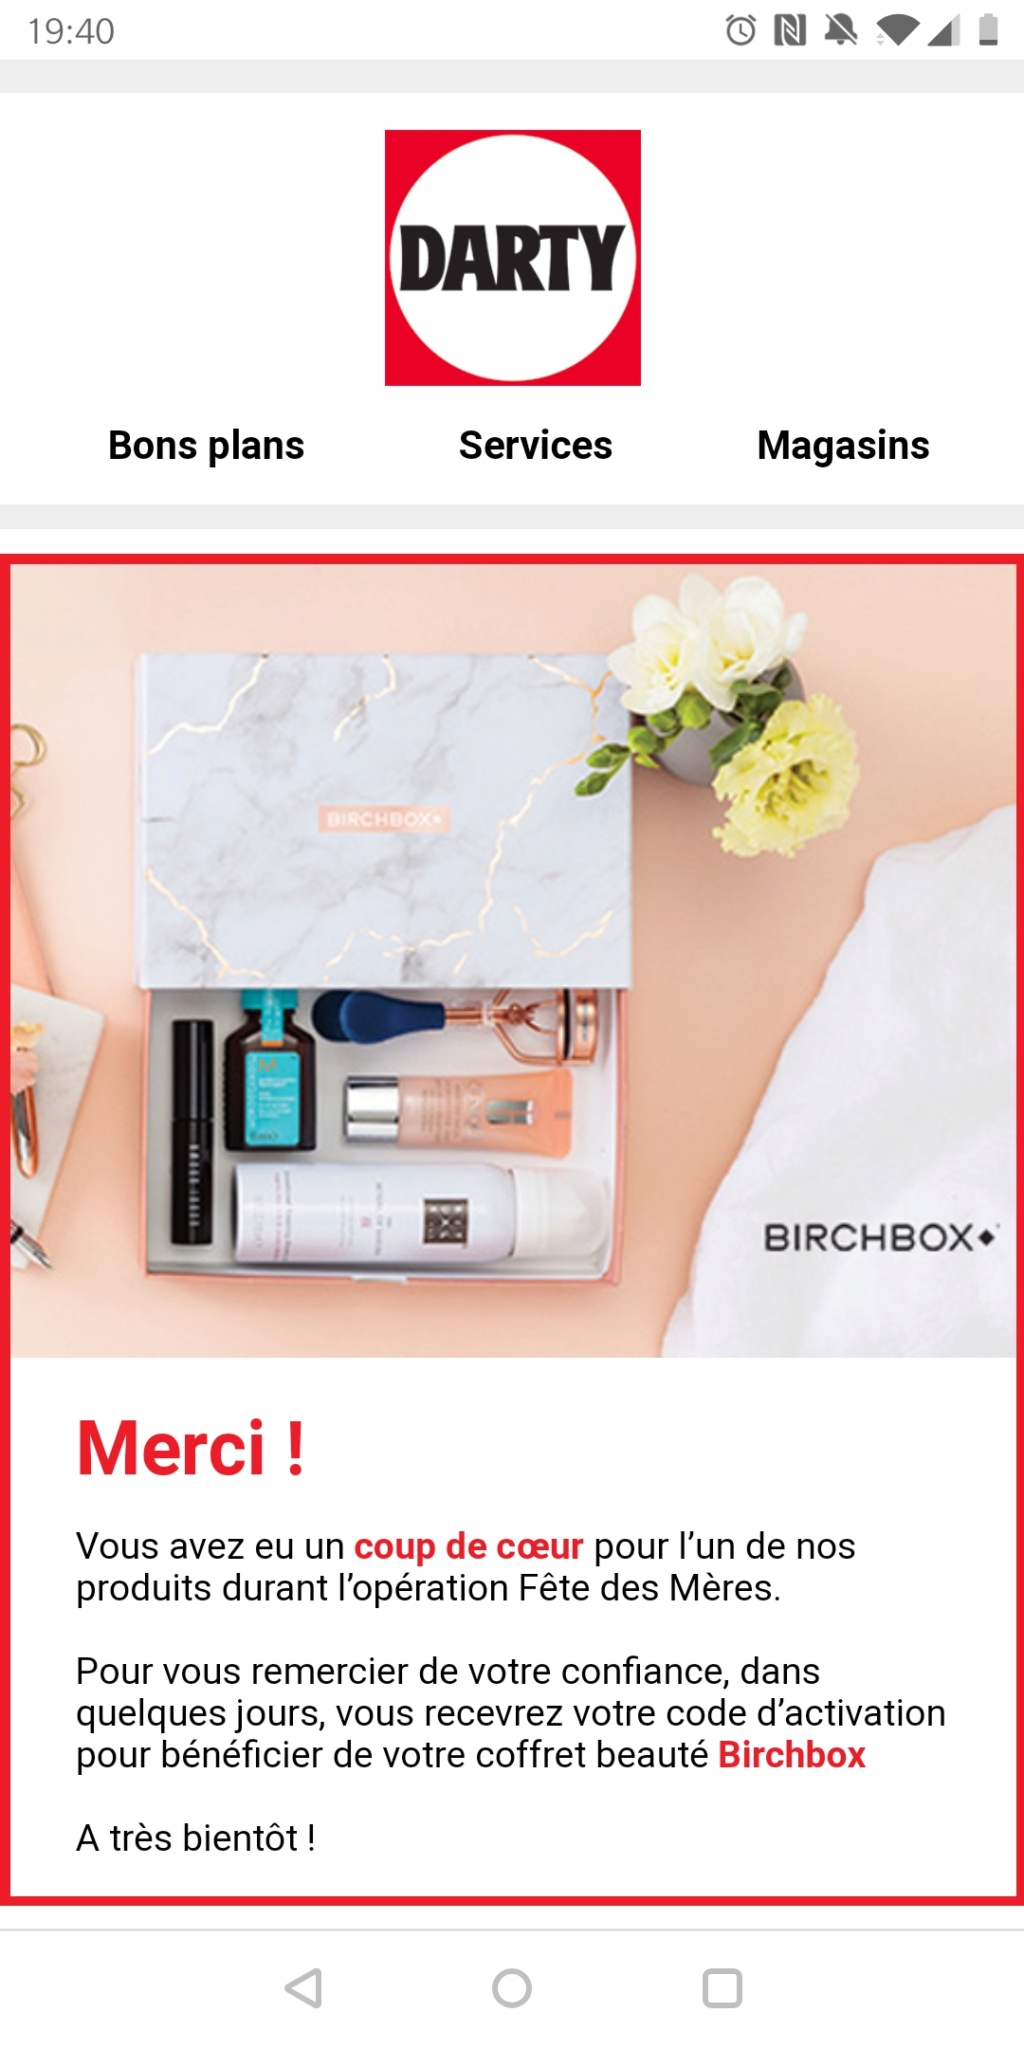 [Juin 2019] Birchbox   Screen13